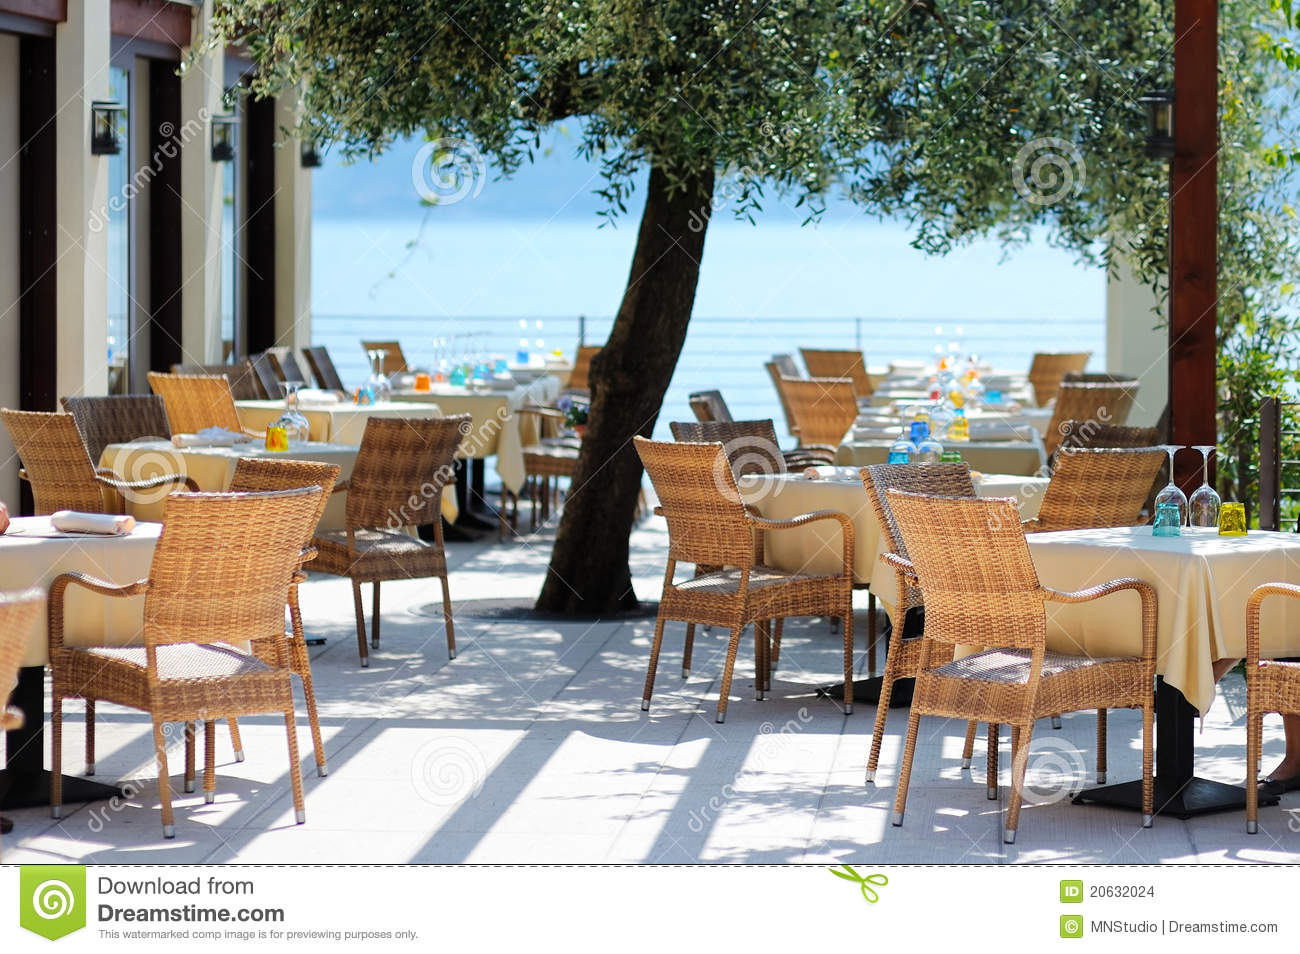 Outdoor Cafe In Italy Stock Image